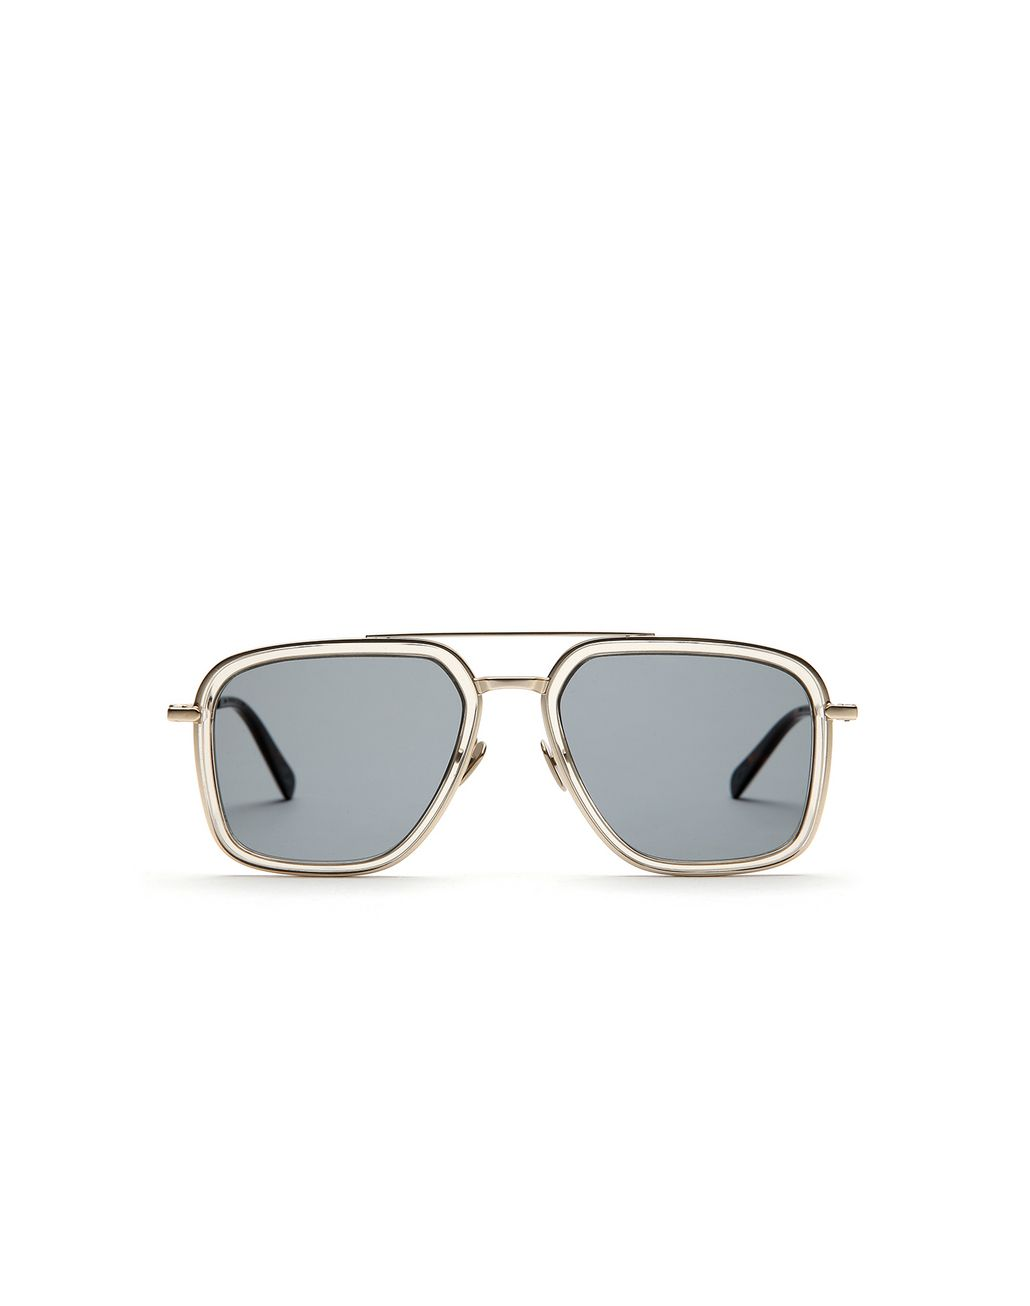 BRIONI Transparent Sand Geometric Shape Sunglasses with Green Lenses  Sunglasses [*** pickupInStoreShippingNotGuaranteed_info ***] f